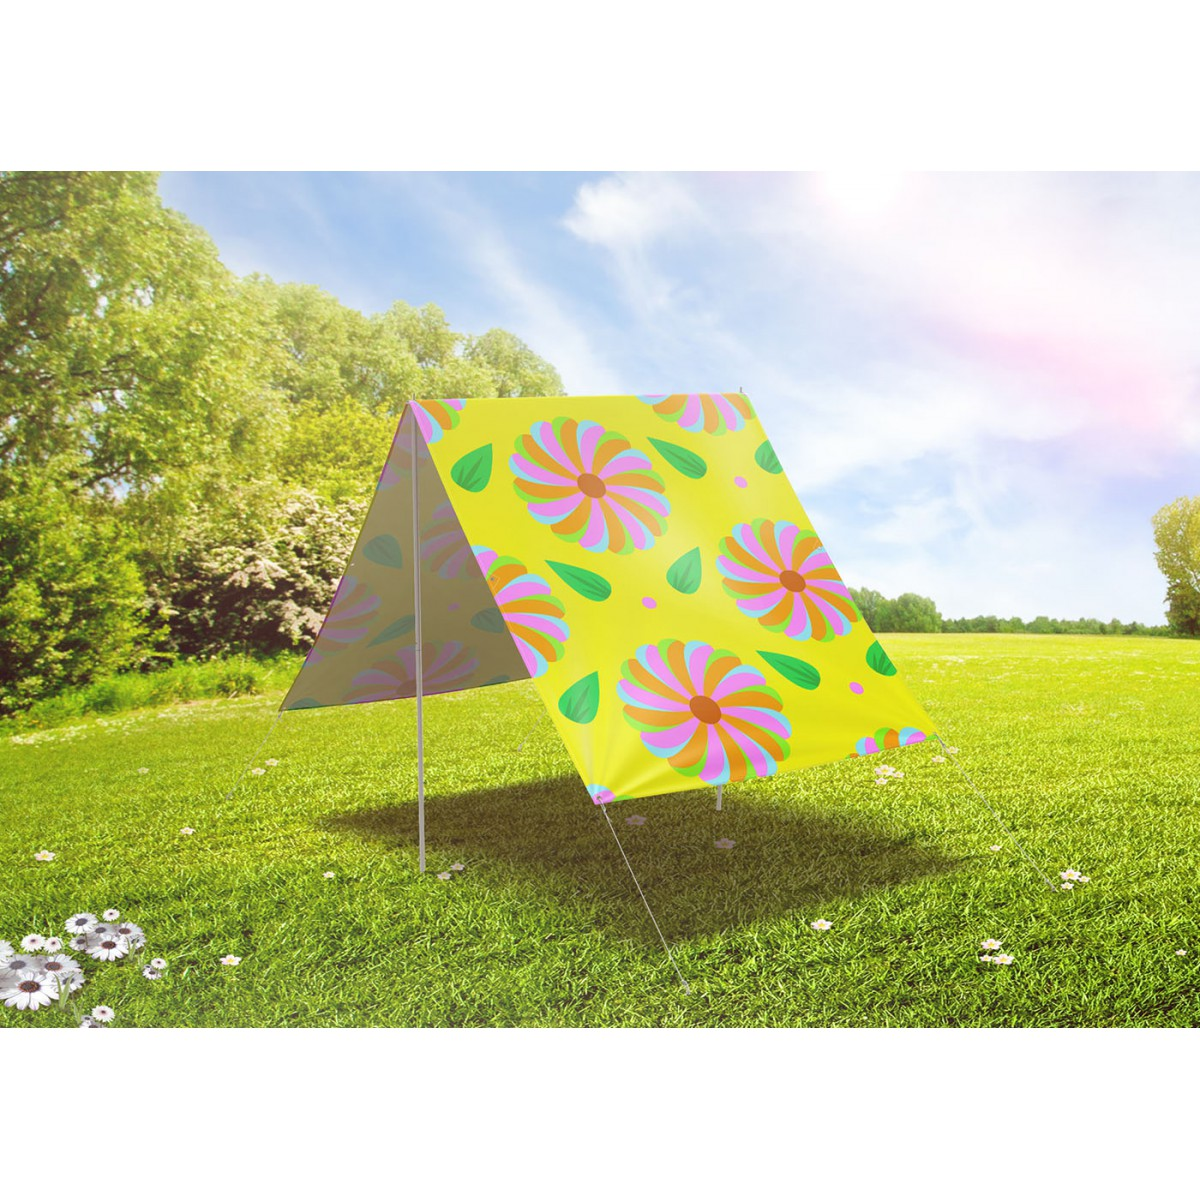 parasol de plage piquer au sol facile transporter fieldcandy. Black Bedroom Furniture Sets. Home Design Ideas